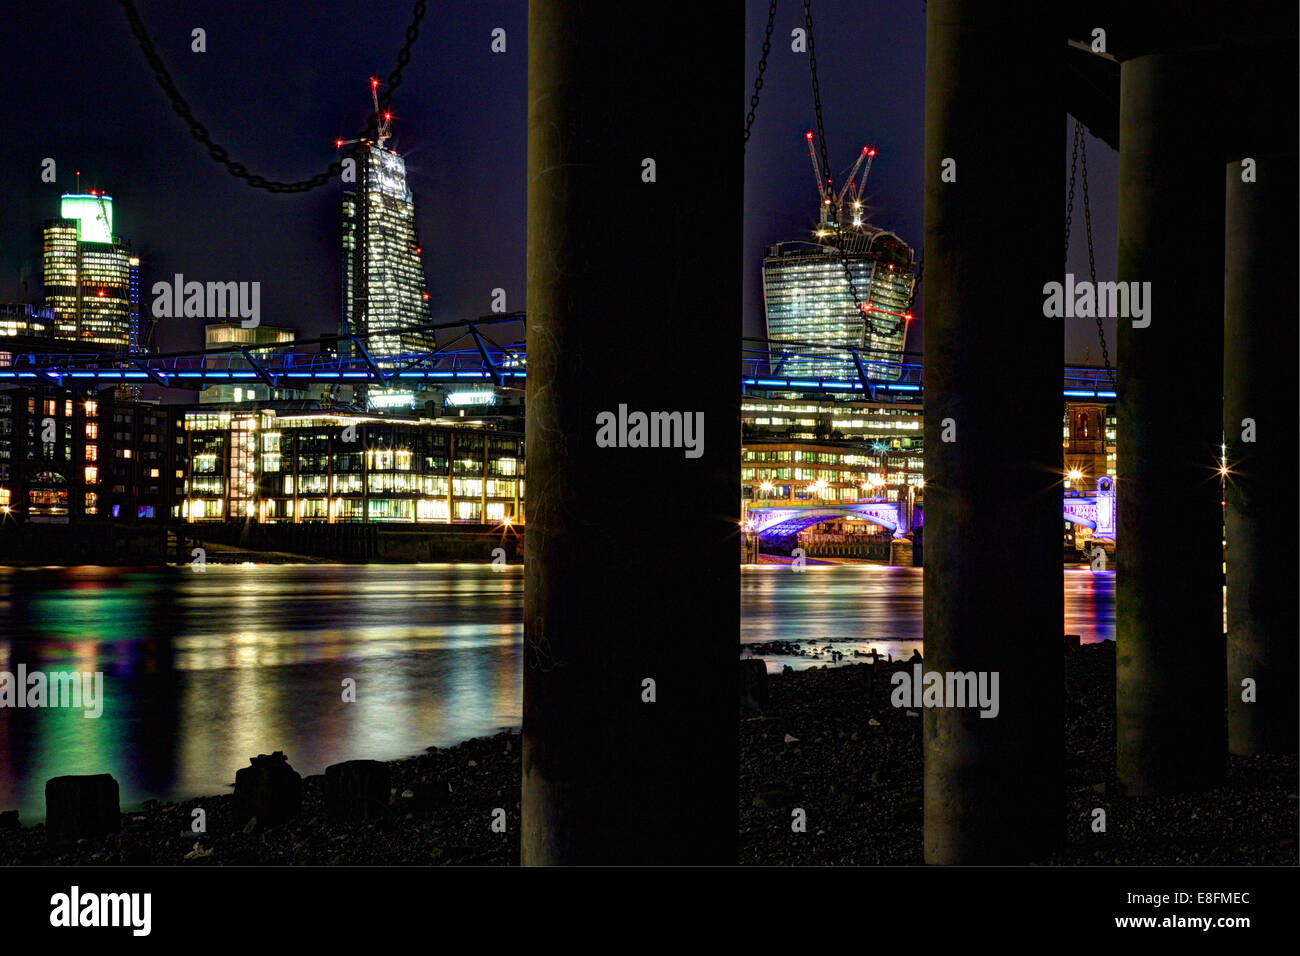 United Kingdom, England, London, Cityscape with Tower 42, Leadenhall Building, Walkie Talkie, Millennium Bridge - Stock Image